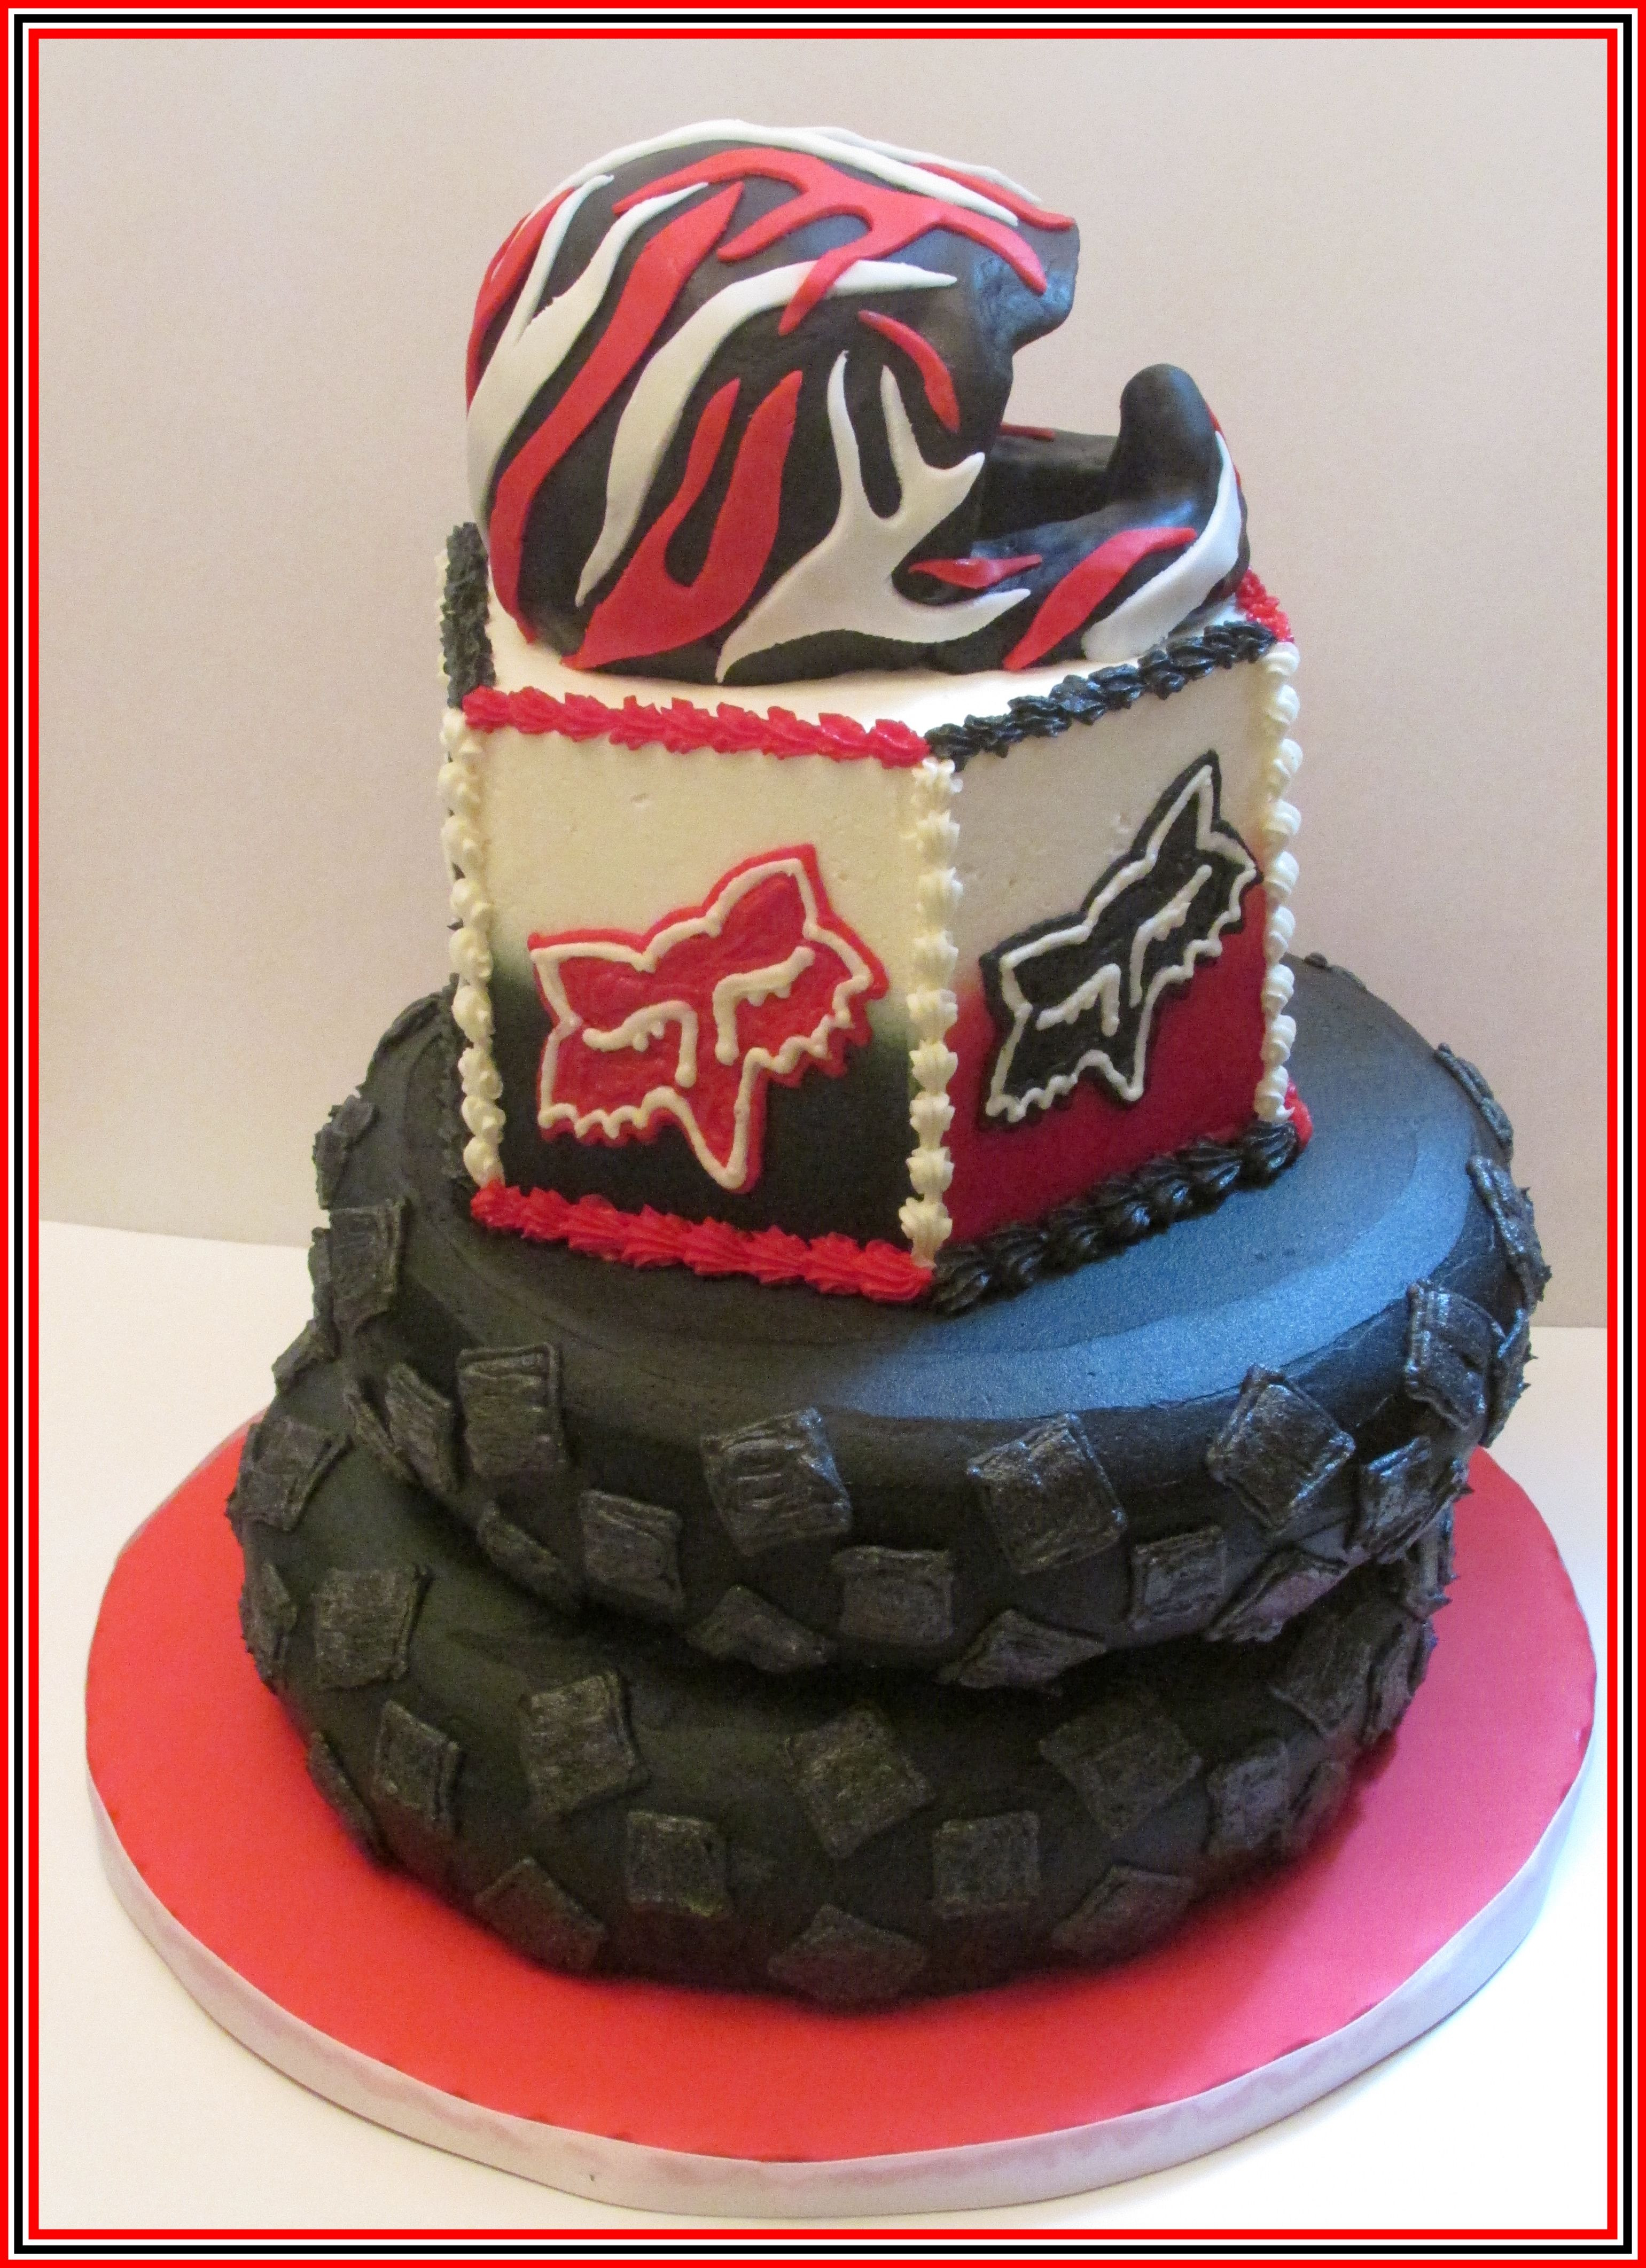 Fox Racing Cake Buttercream Iced Cake With Rkt Covered